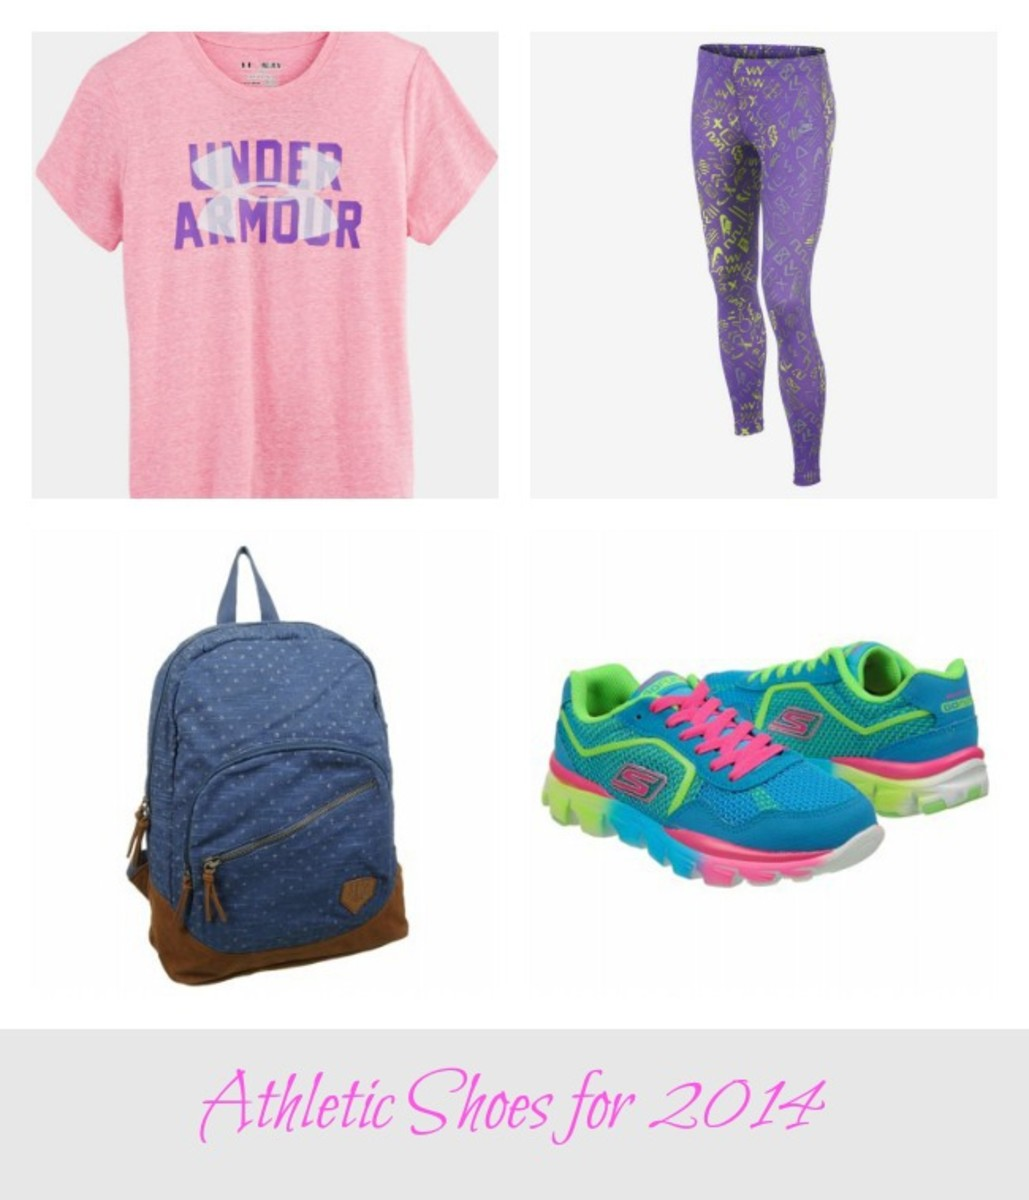 Athletic Shoes for 2014